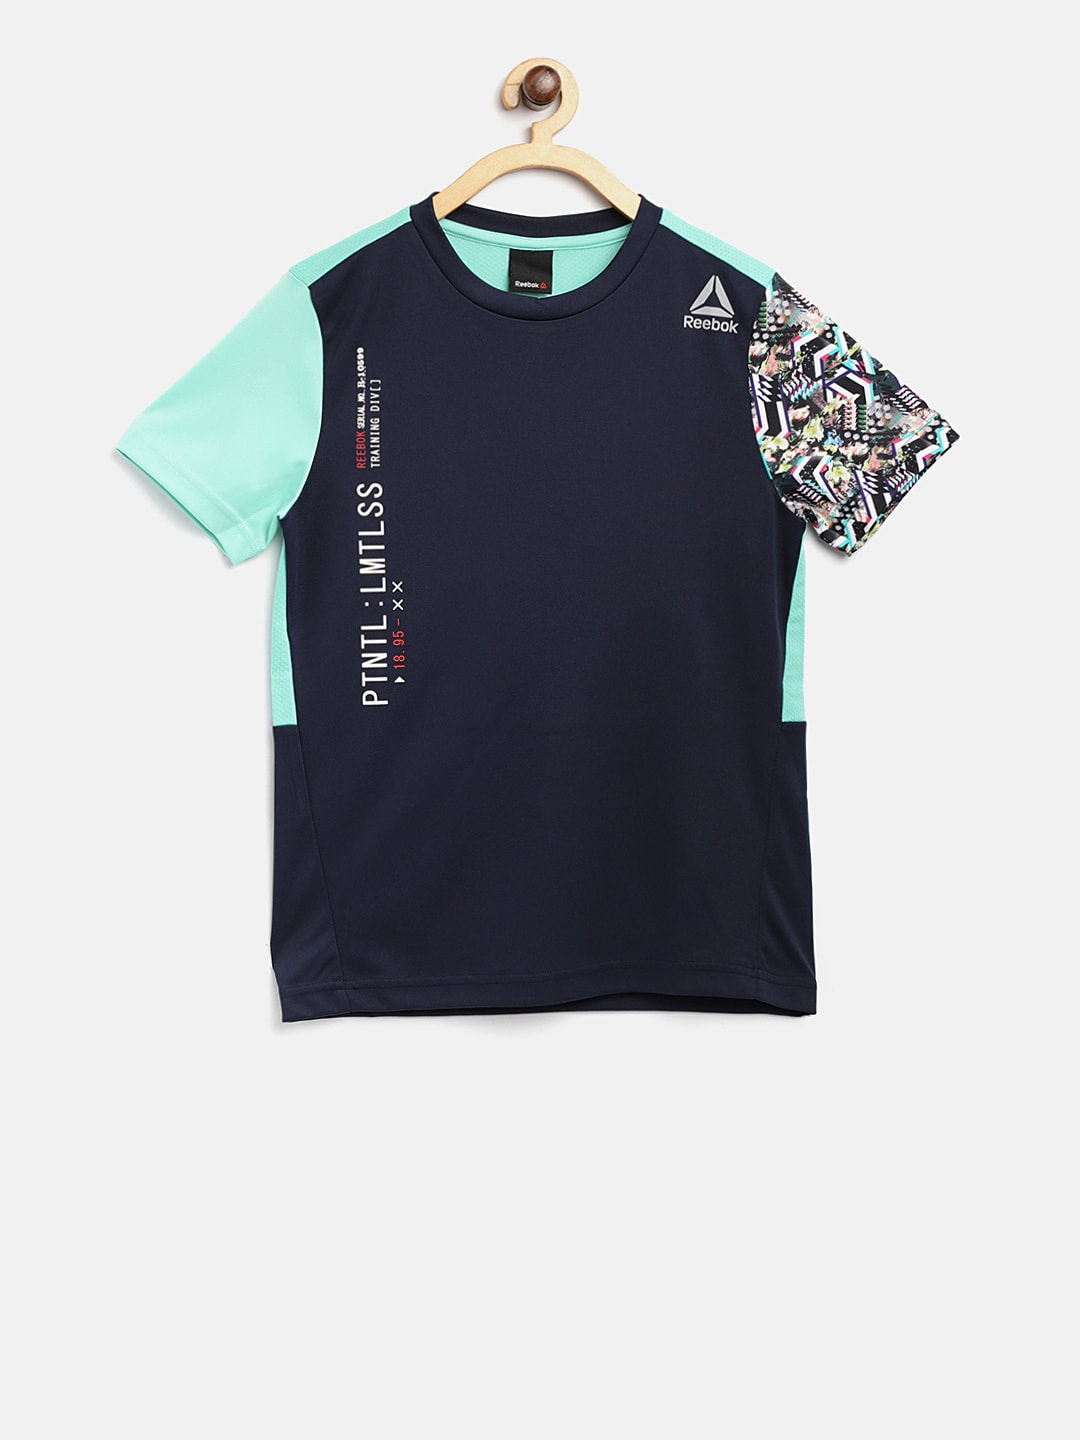 2b82da78fec628 Reebok Boys Girls Tshirts - Buy Reebok Boys Girls Tshirts online in India